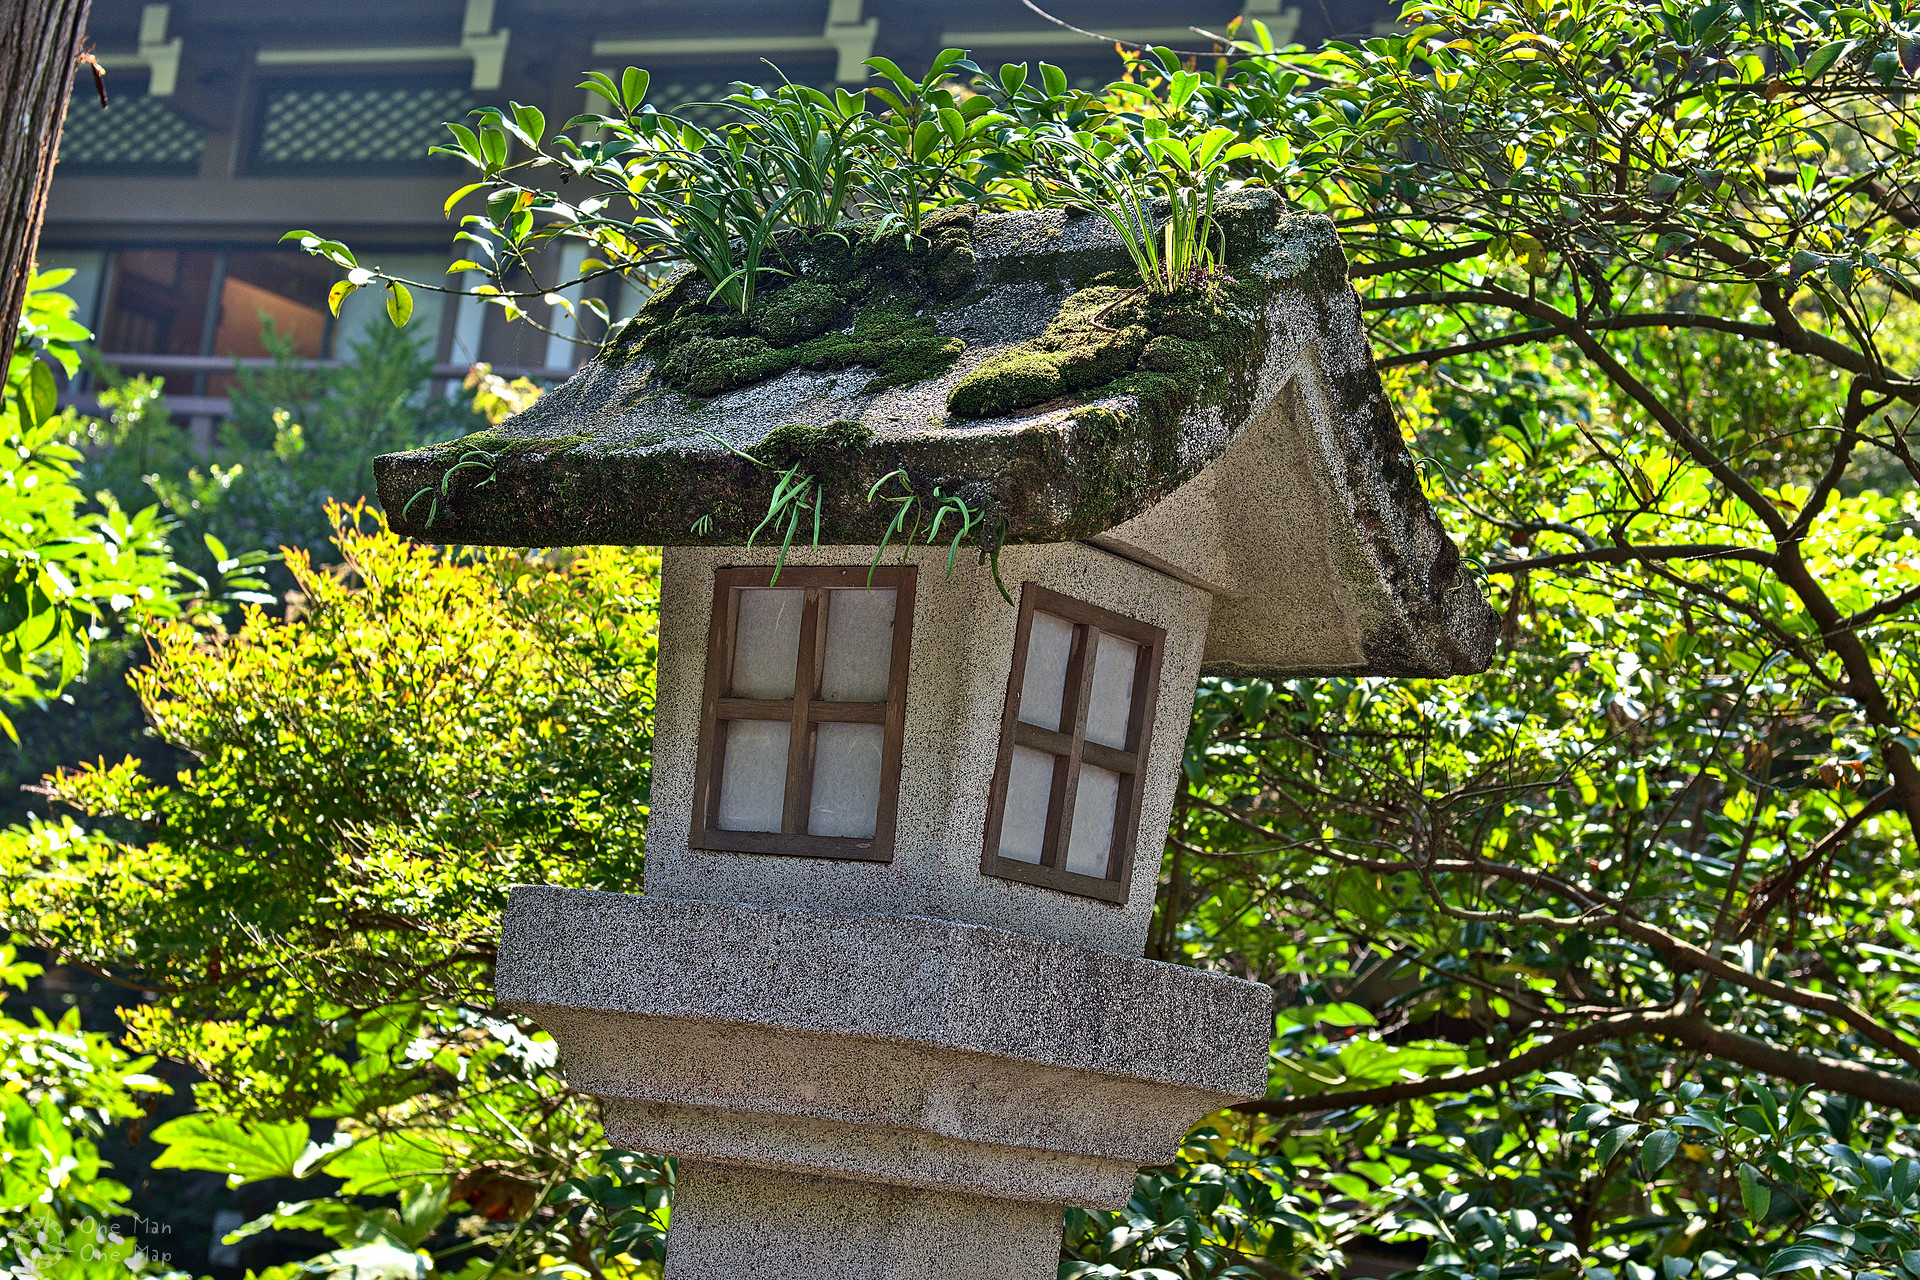 Temple overflow in kamakura one man one map as always it was amazing to see how well traditional japanese architecture fit into nature in europe most churches are made of of stone or concrete biocorpaavc Image collections